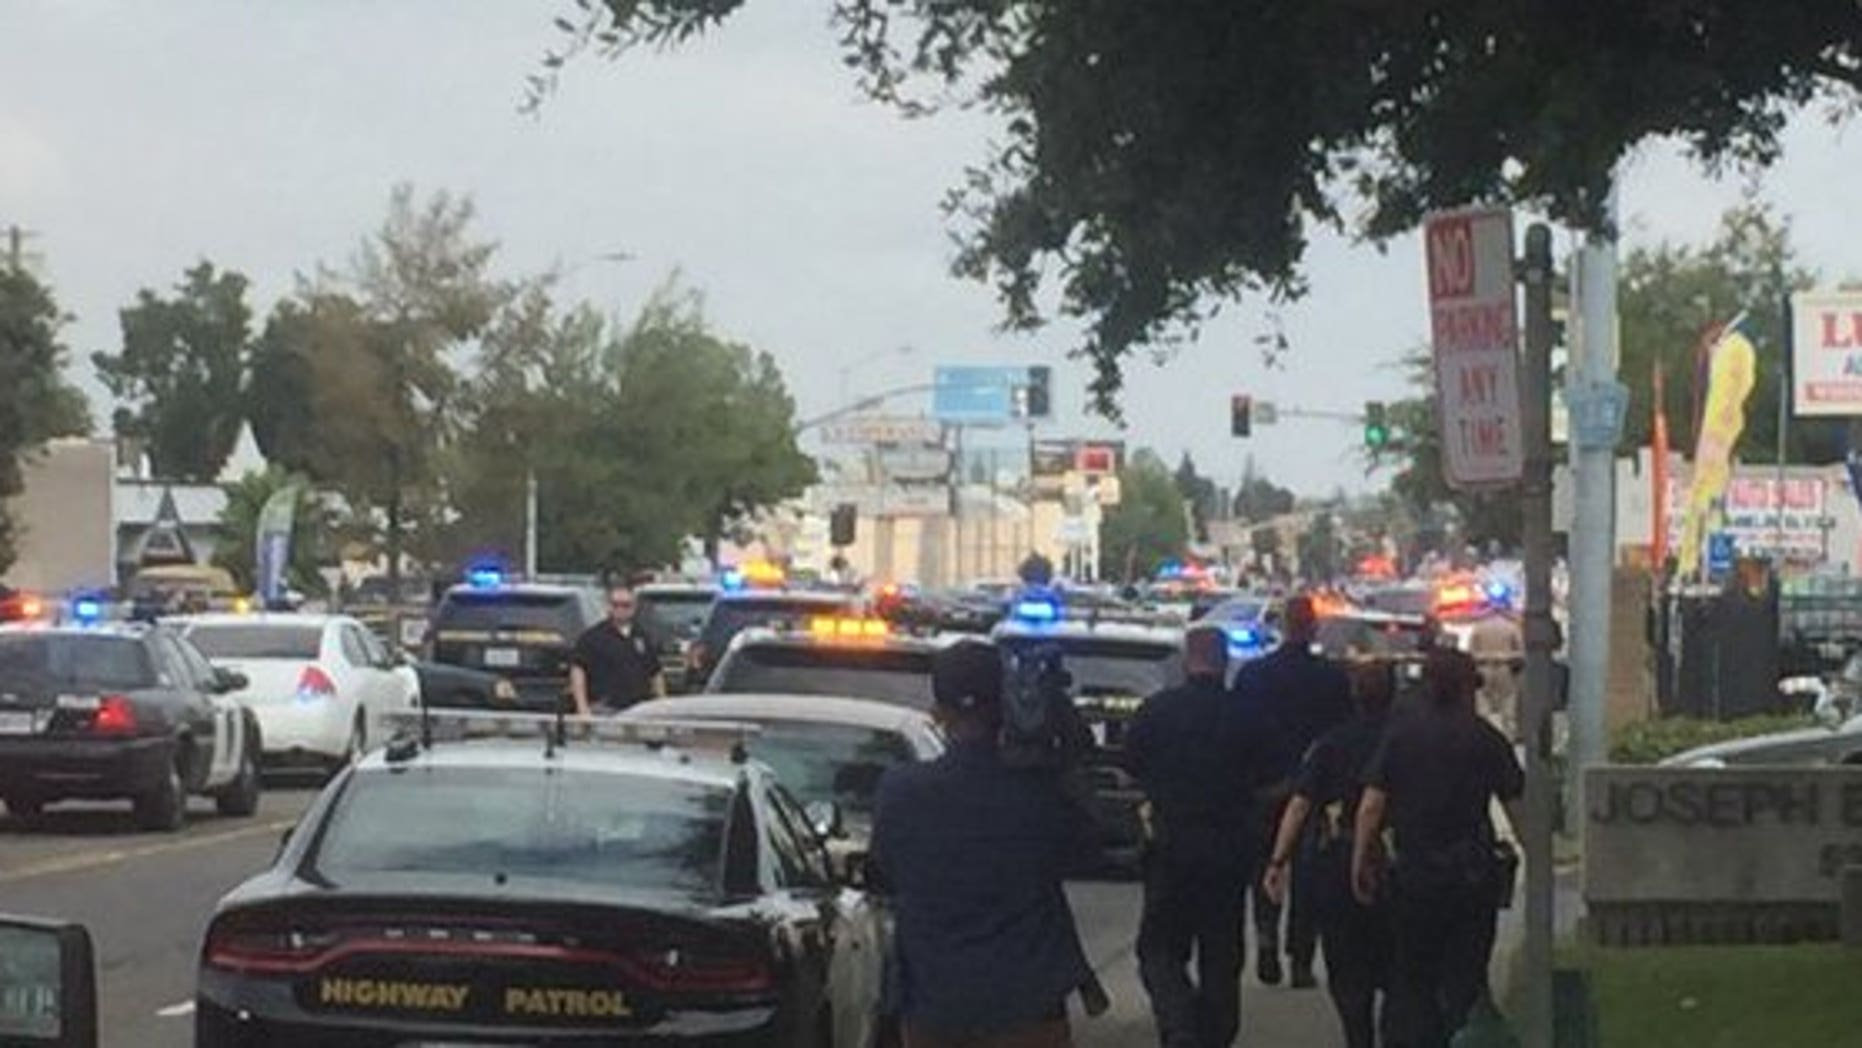 Two police officers in Sacramento were injured after a shootout with a suspect. The suspect was pronounced dead on the scene.